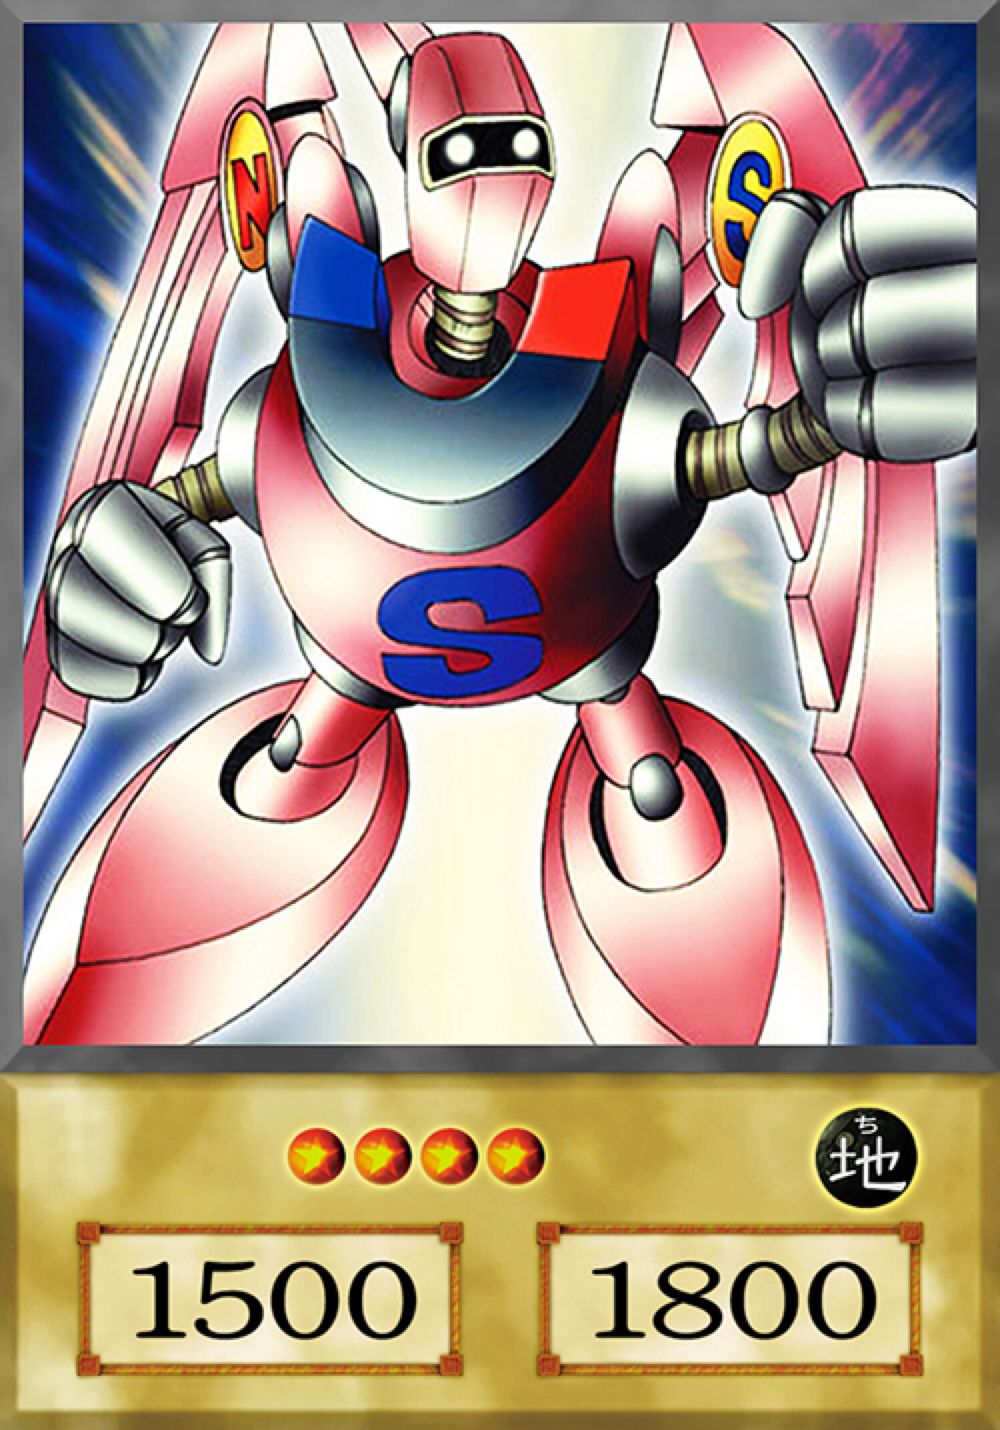 Gamma the warrior anime by yugiohfreakster on